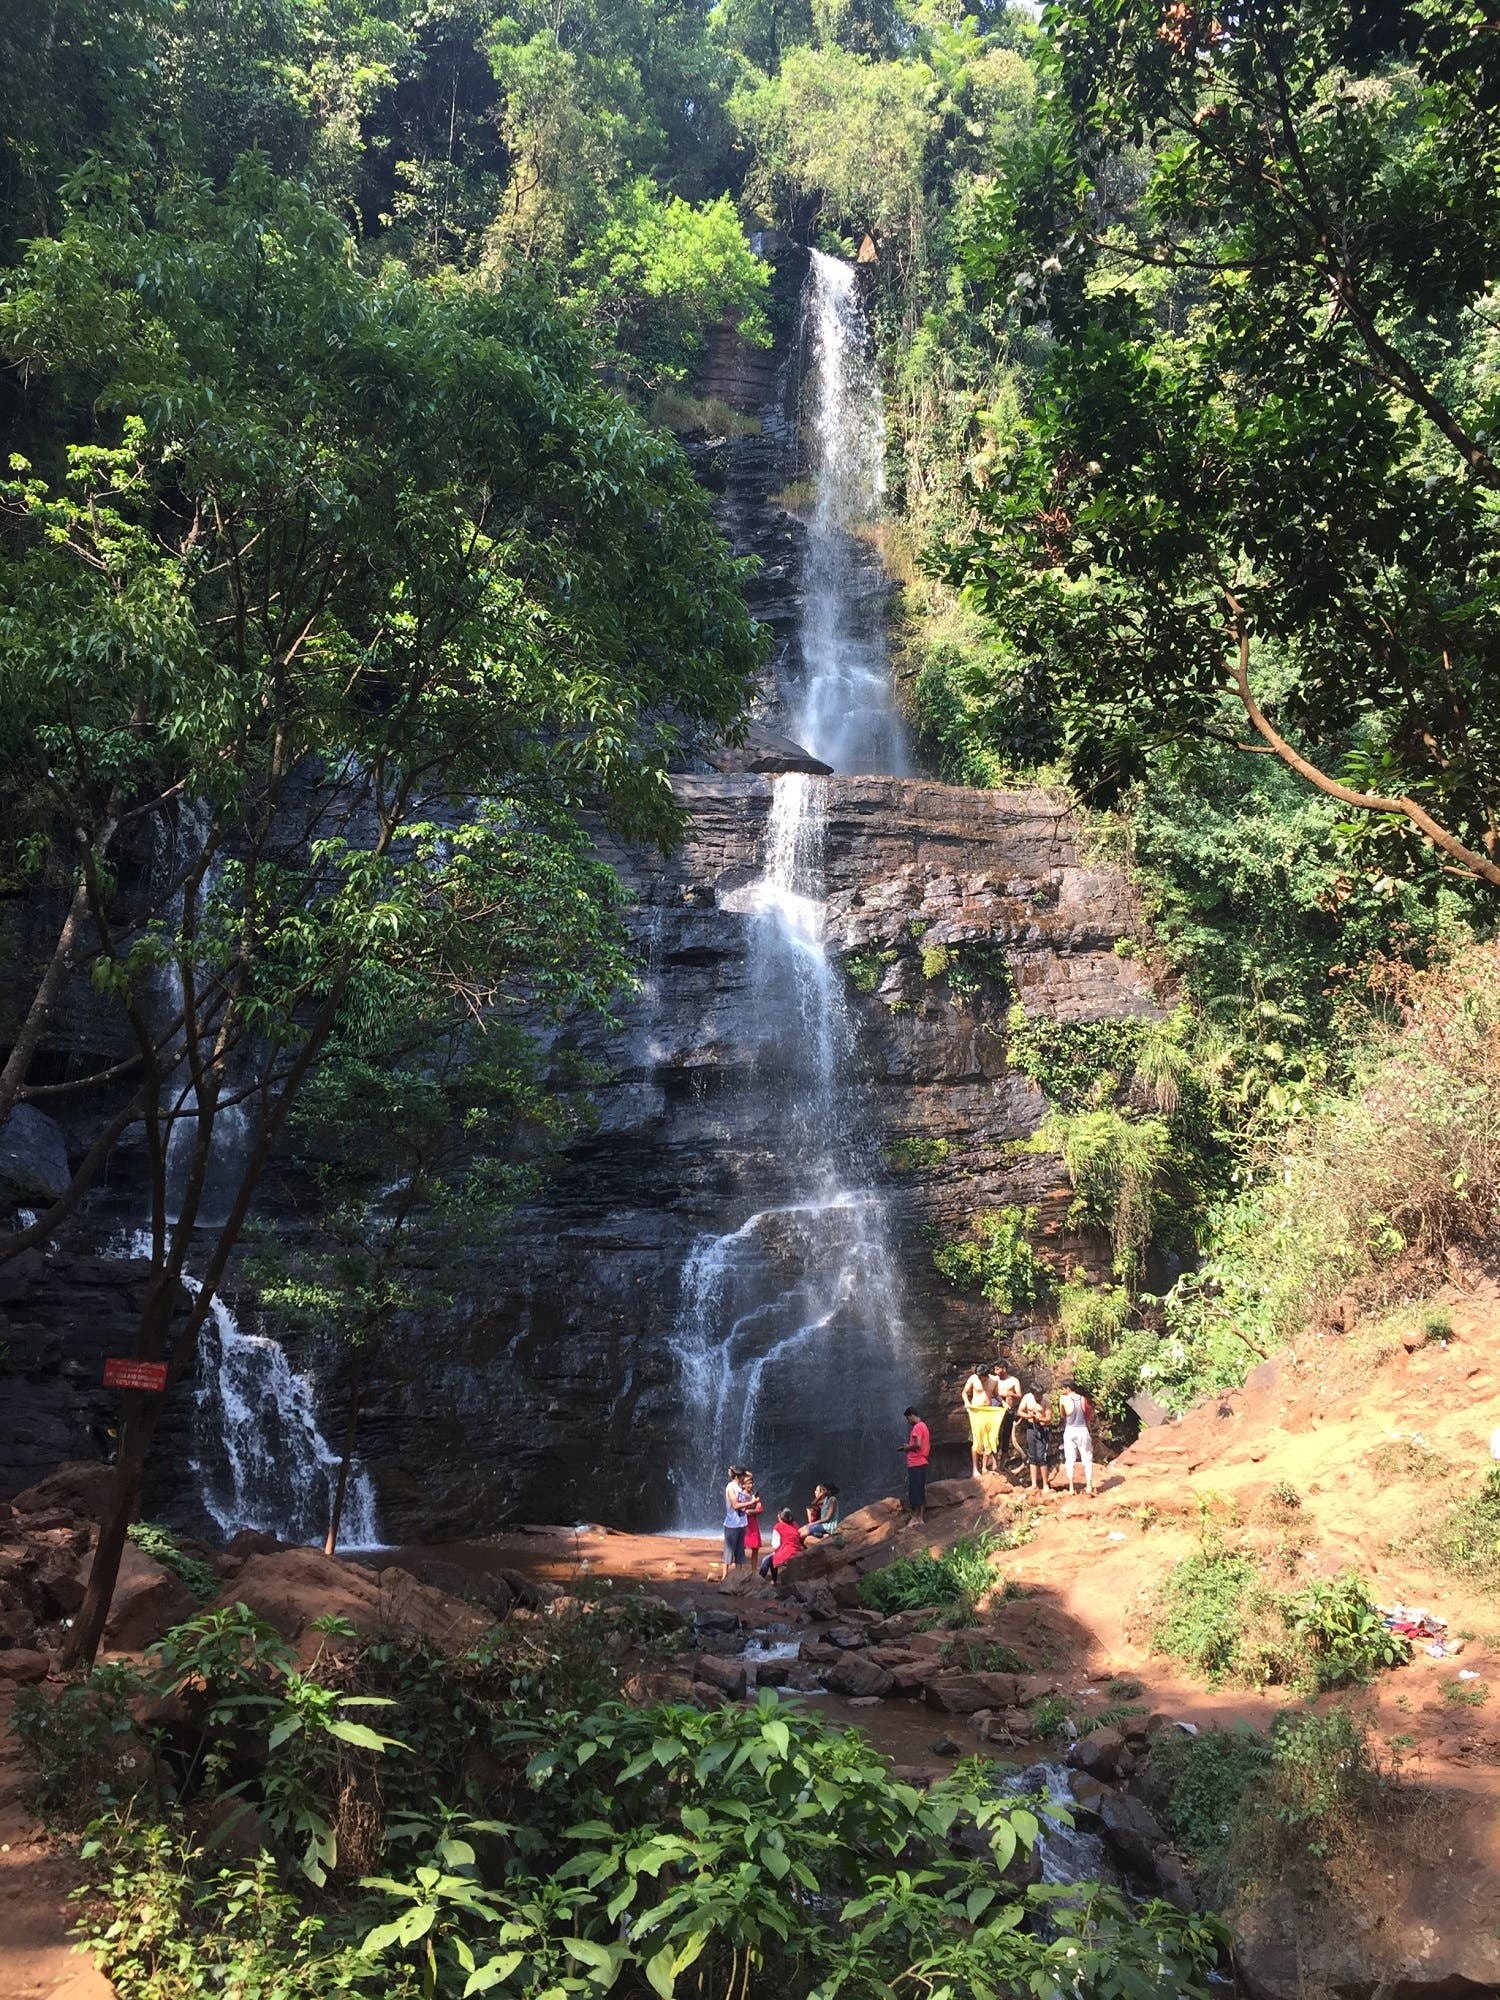 A fall amid coffee plantations in Chickmagalur. (Supplied)